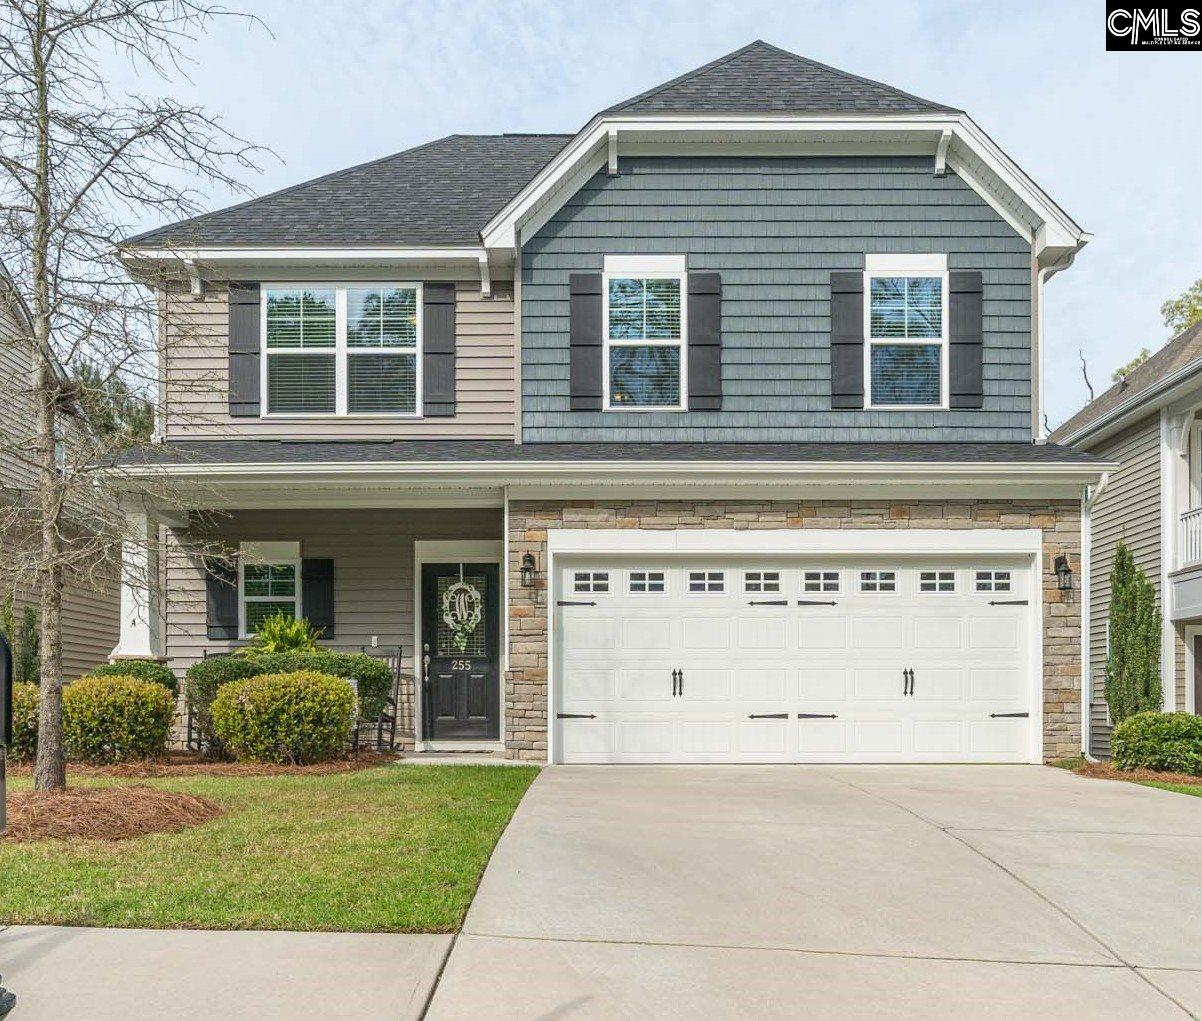 255 Penwood Lexington, SC 29072